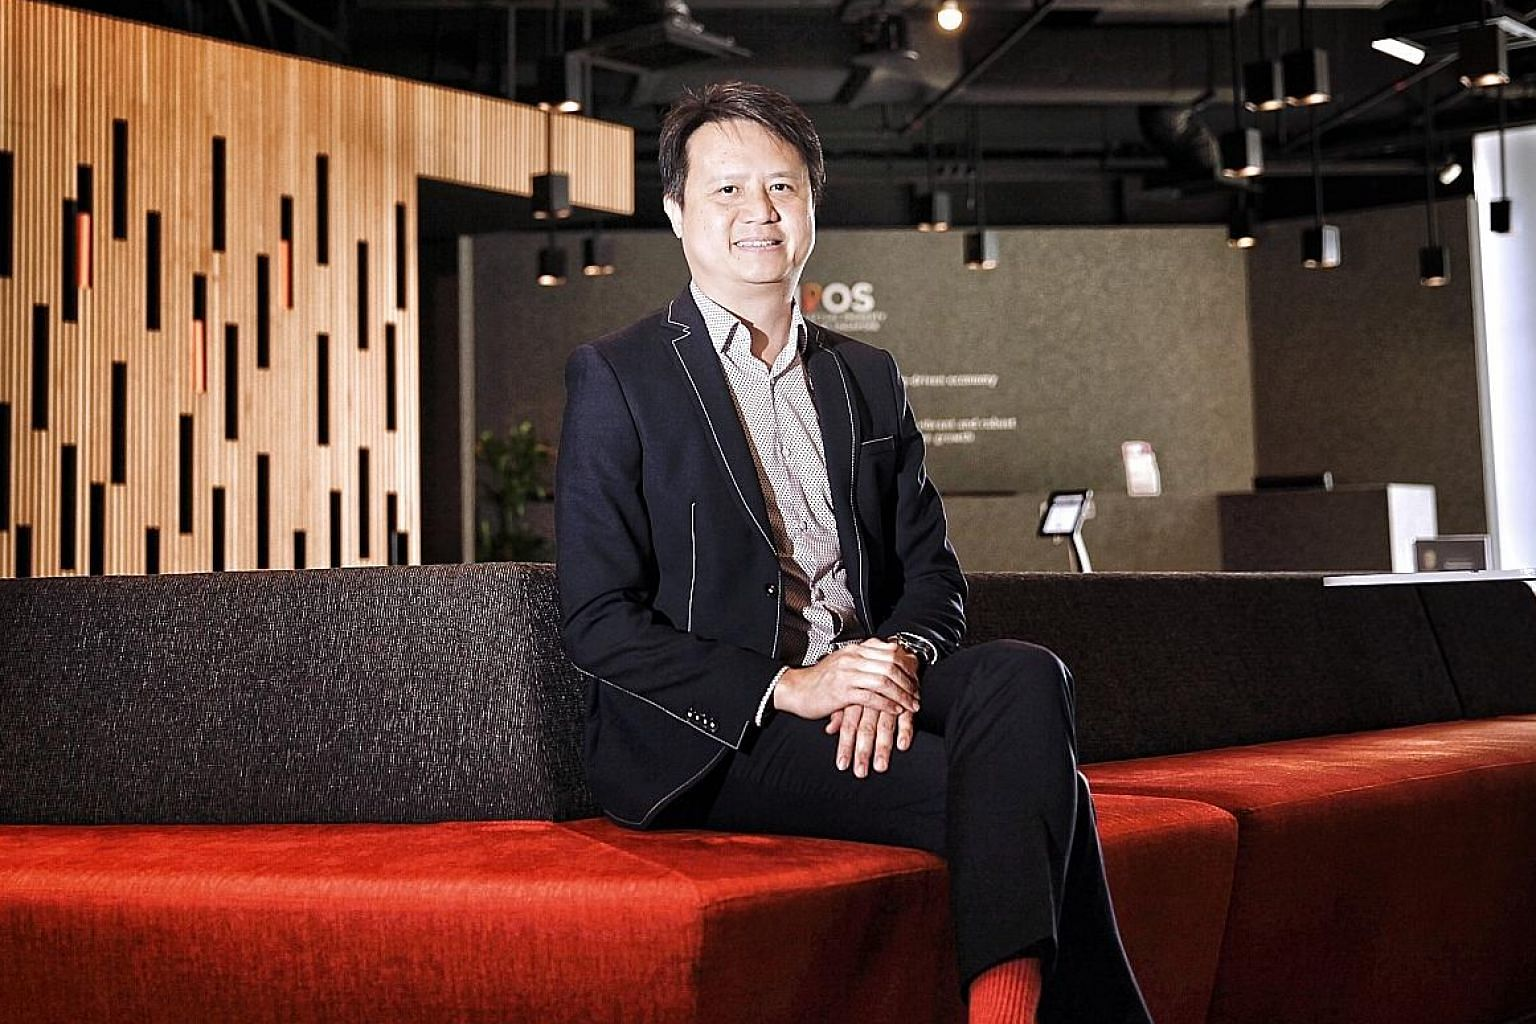 """IPOS chief executive Daren Tang says: """"I joke that we are a weapons specialist to help other people, whether they are financiers, other government agencies or entrepreneurs to hunt faster for more exotic prey."""""""